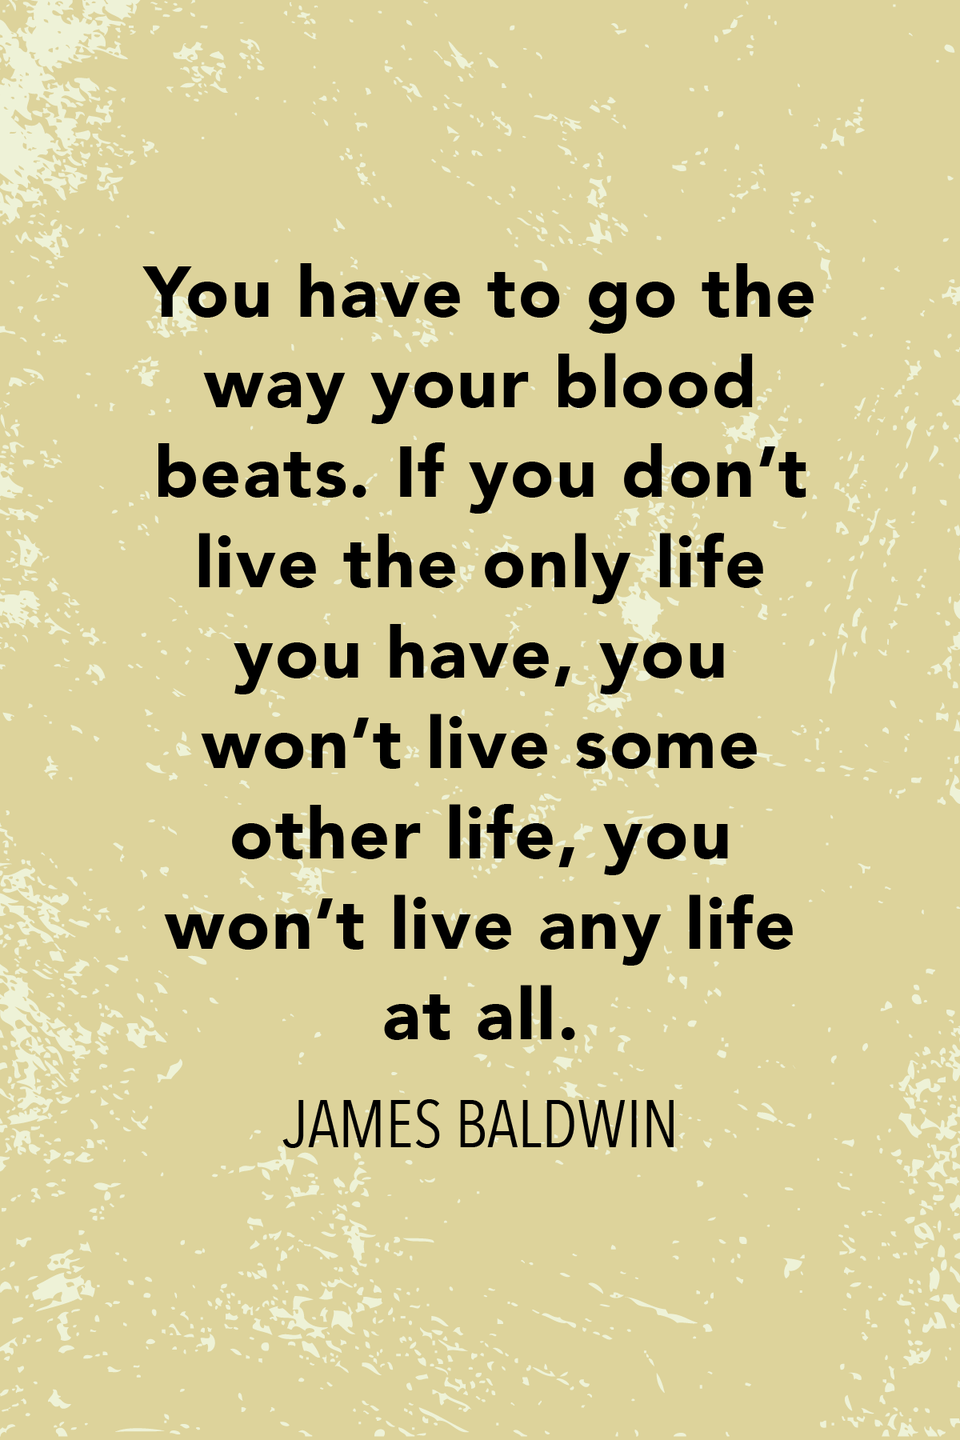 """<p>""""You have to go the way your blood beats. If you don't live the only life you have, you won't live some other life, you won't live any life at all,"""" the novelist <a href=""""https://www.villagevoice.com/2018/06/22/james-baldwin-on-being-gay-in-america/"""" rel=""""nofollow noopener"""" target=""""_blank"""" data-ylk=""""slk:told The Village Voice in 1984"""" class=""""link rapid-noclick-resp"""">told <em>The Village Voice </em>in 1984</a>.</p>"""